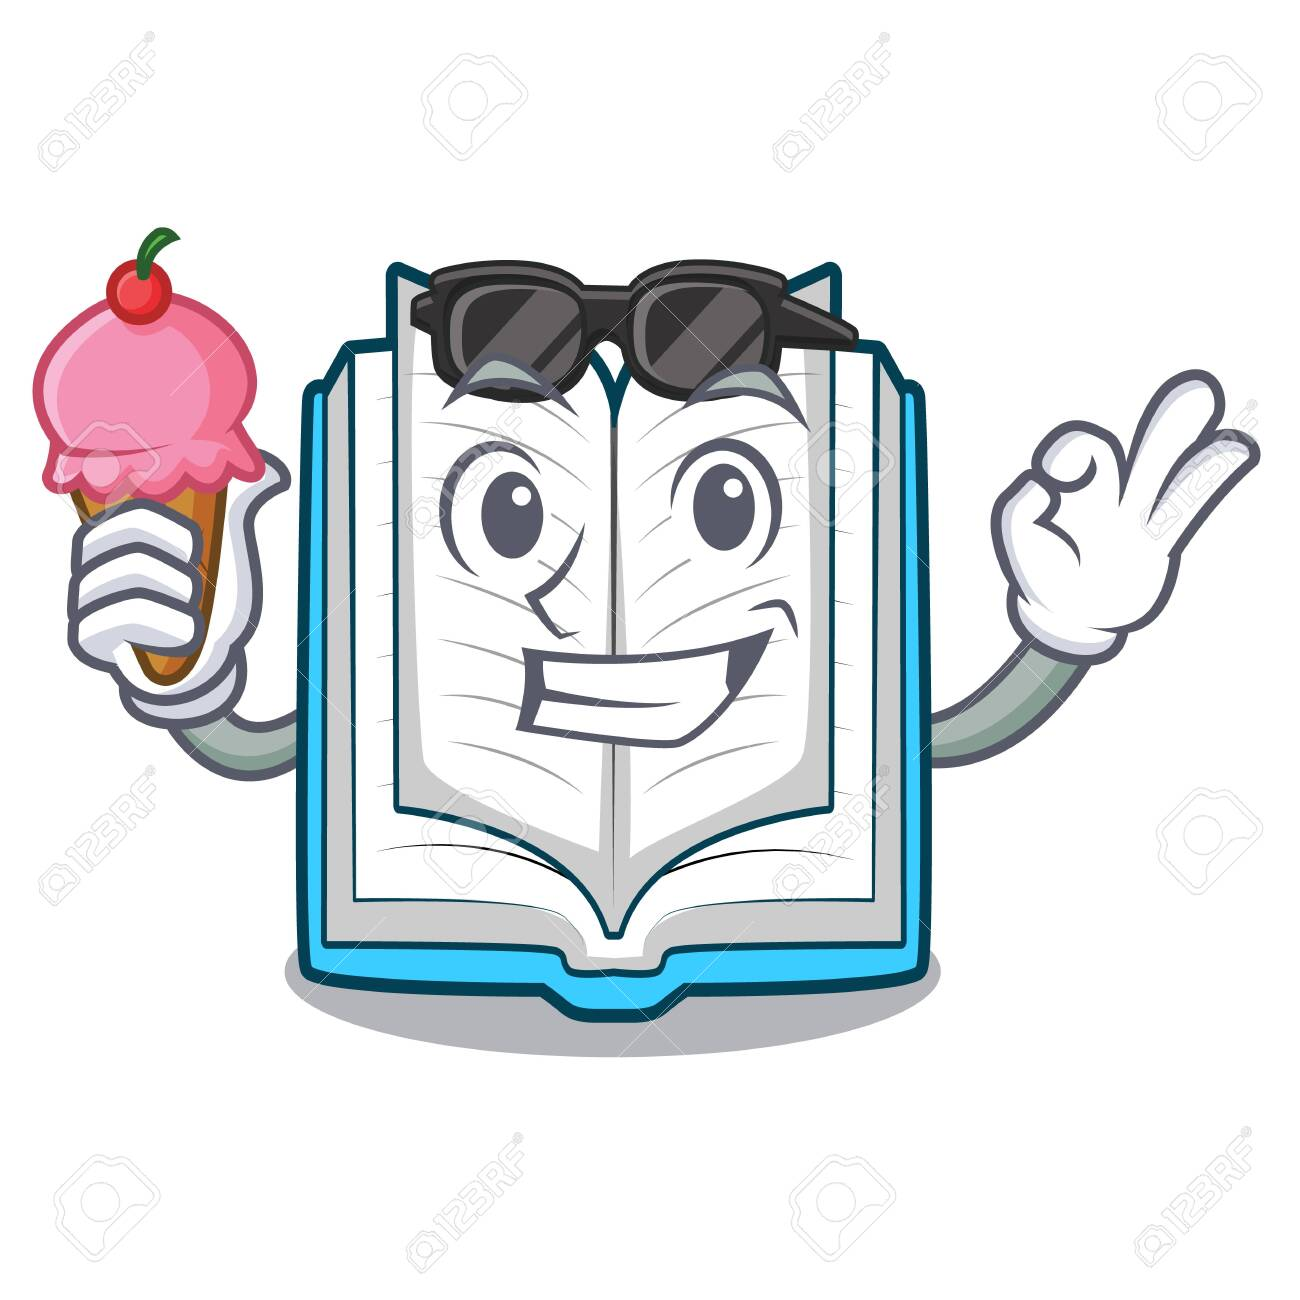 With ice cream opened book isolated in the character vector illustration - 124483828